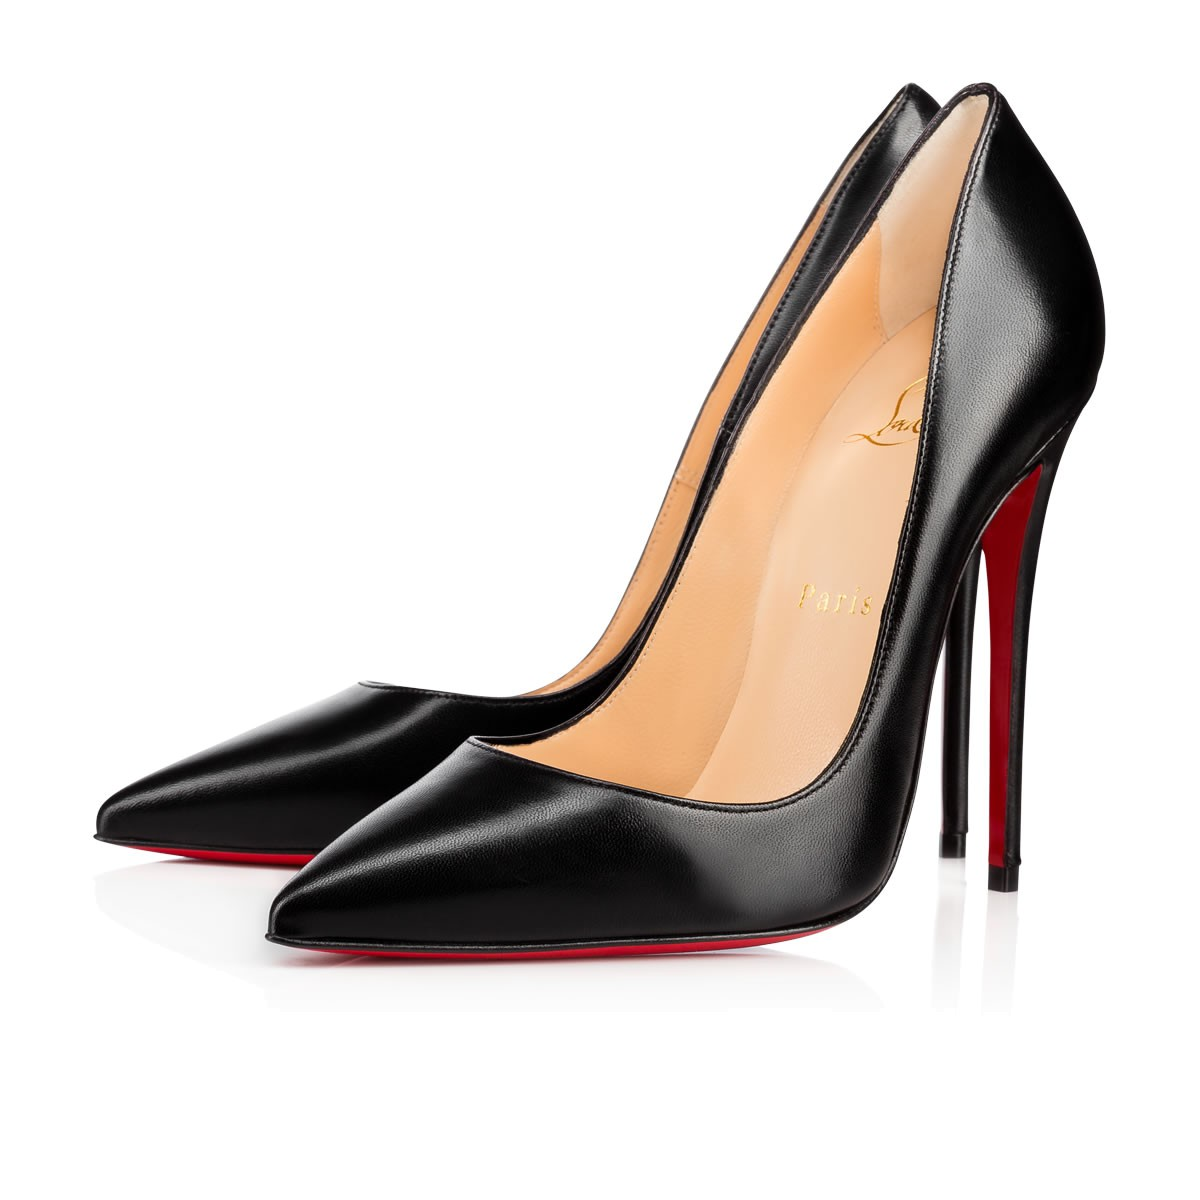 So Kate Pumps by Christian Louboutin, available on christianlouboutin.com for $695 Kylie Jenner Shoes Exact Product